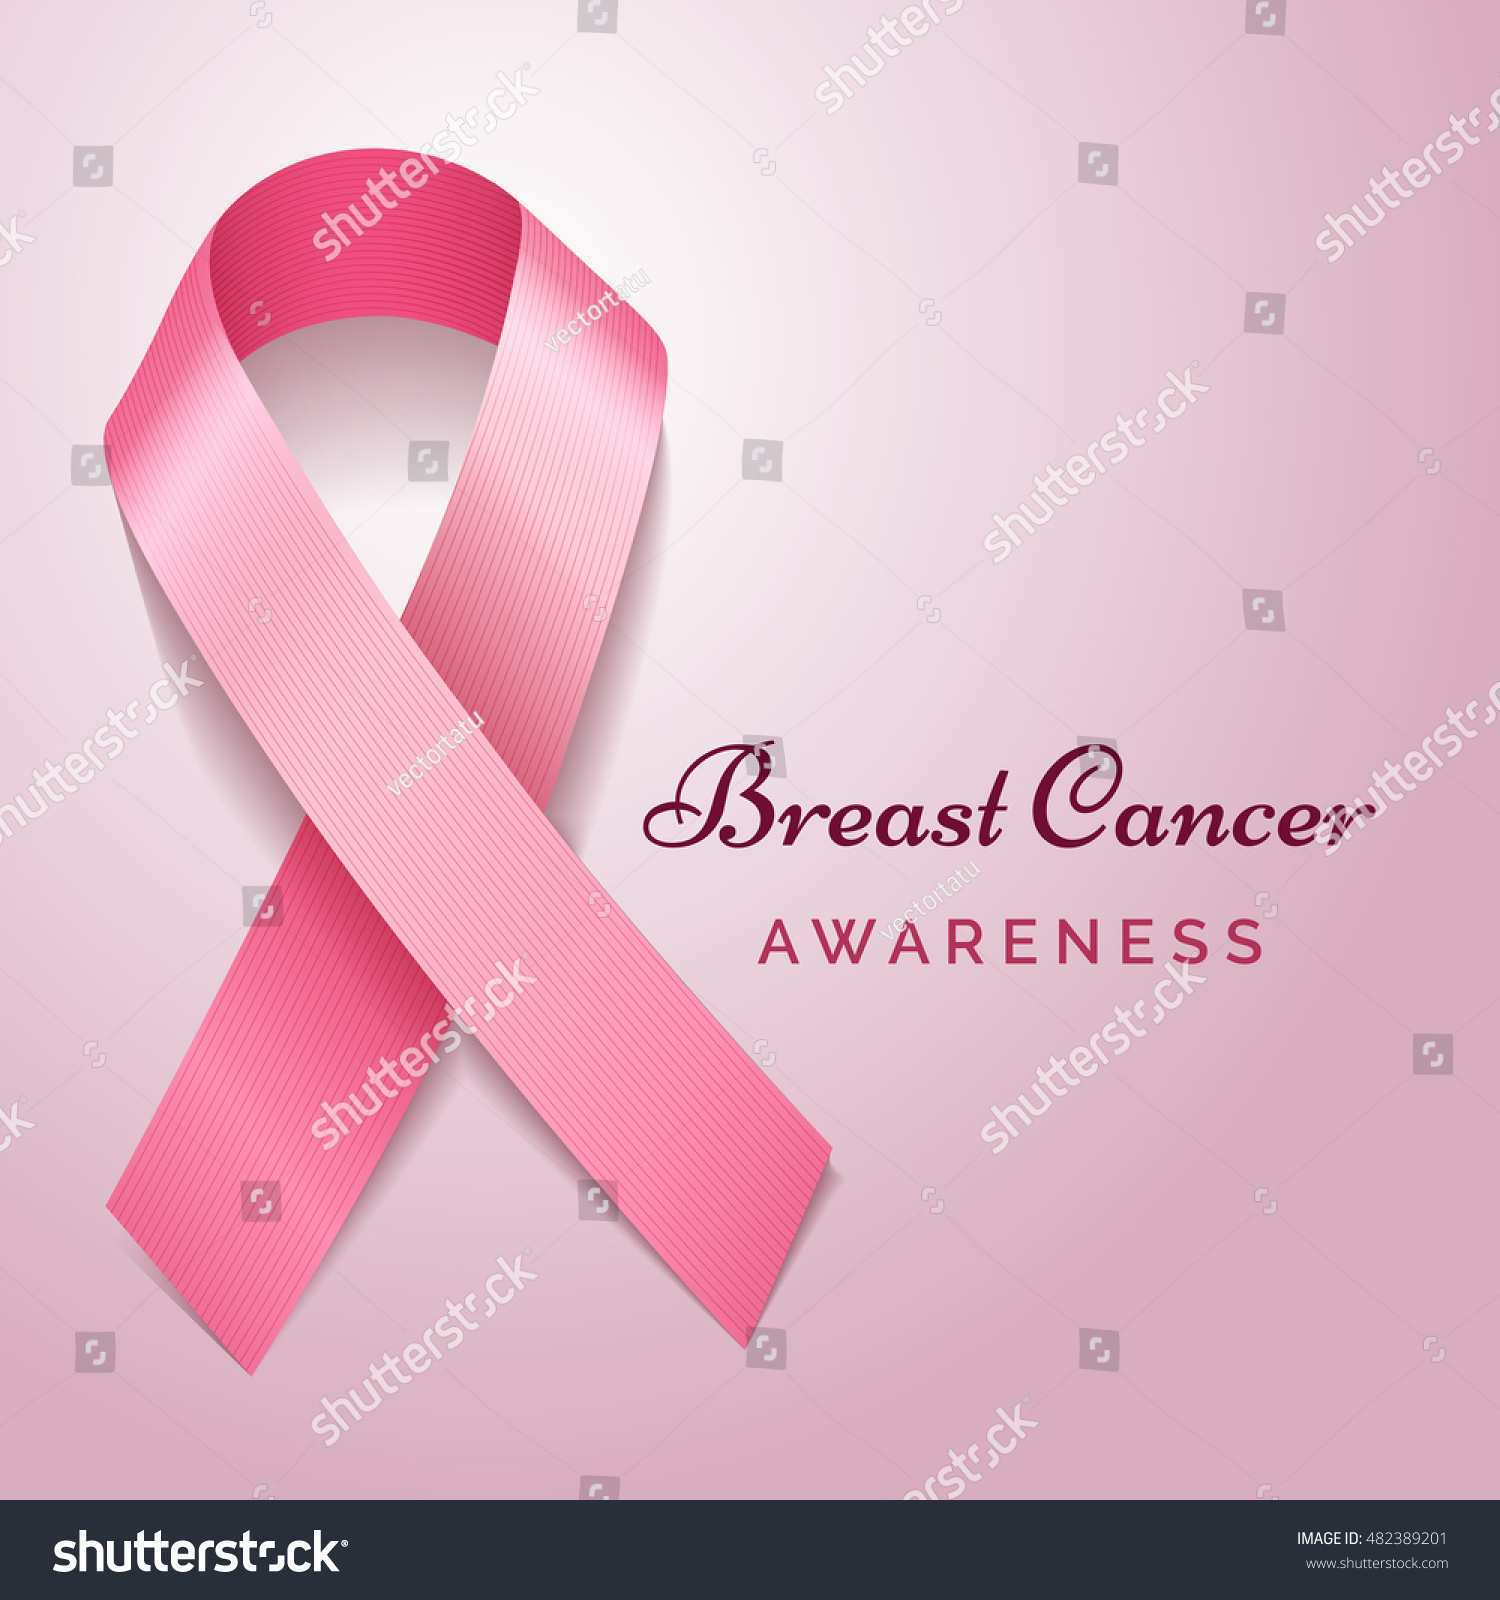 72 Format Breast Cancer Awareness Flyer Template Free in Photoshop with Breast Cancer Awareness Flyer Template Free